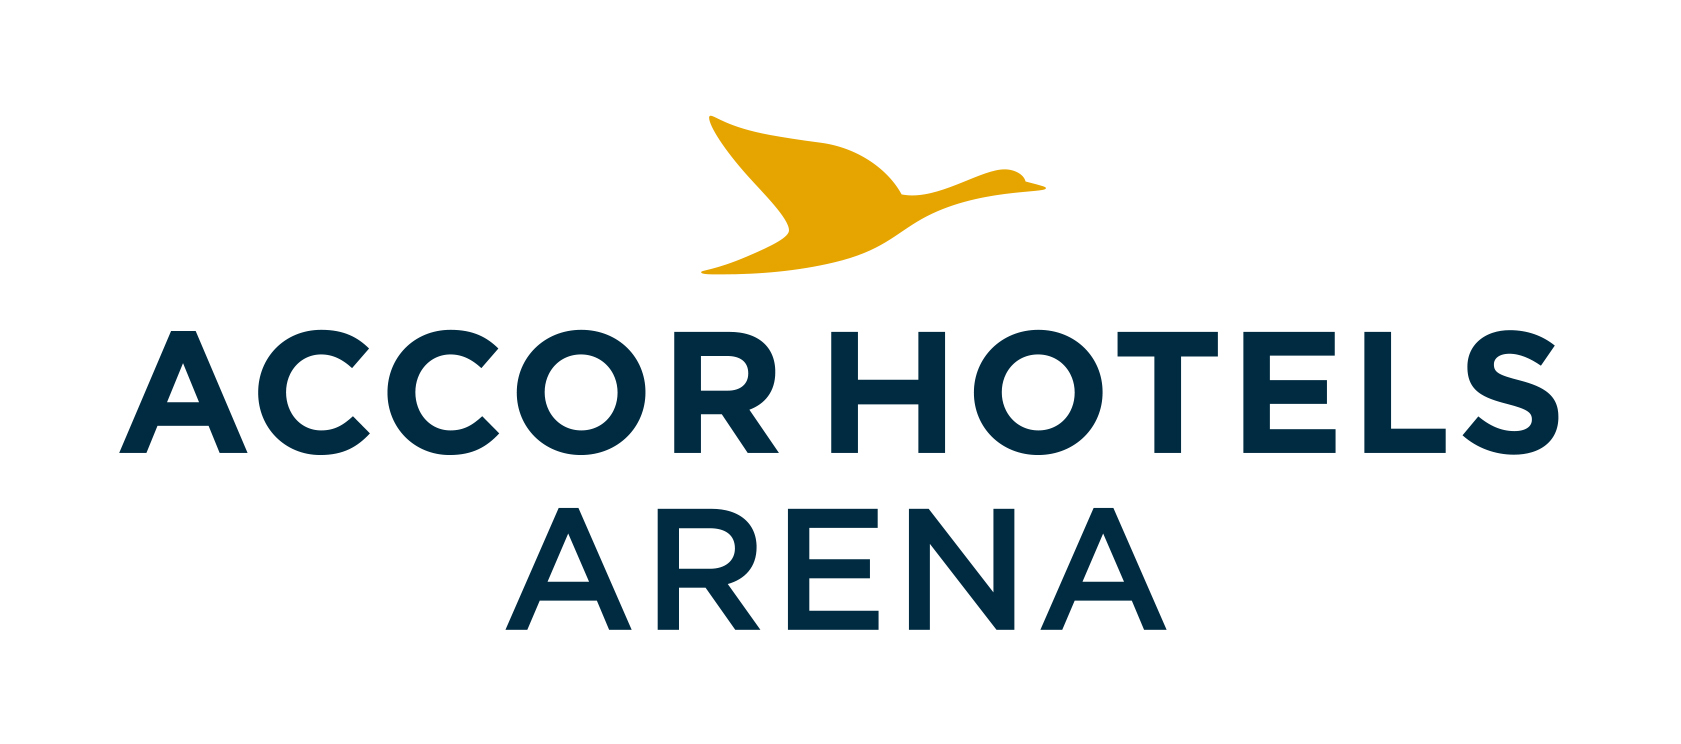 Fichier:Accor hotels arena logo.jpg - Logo Accor PNG